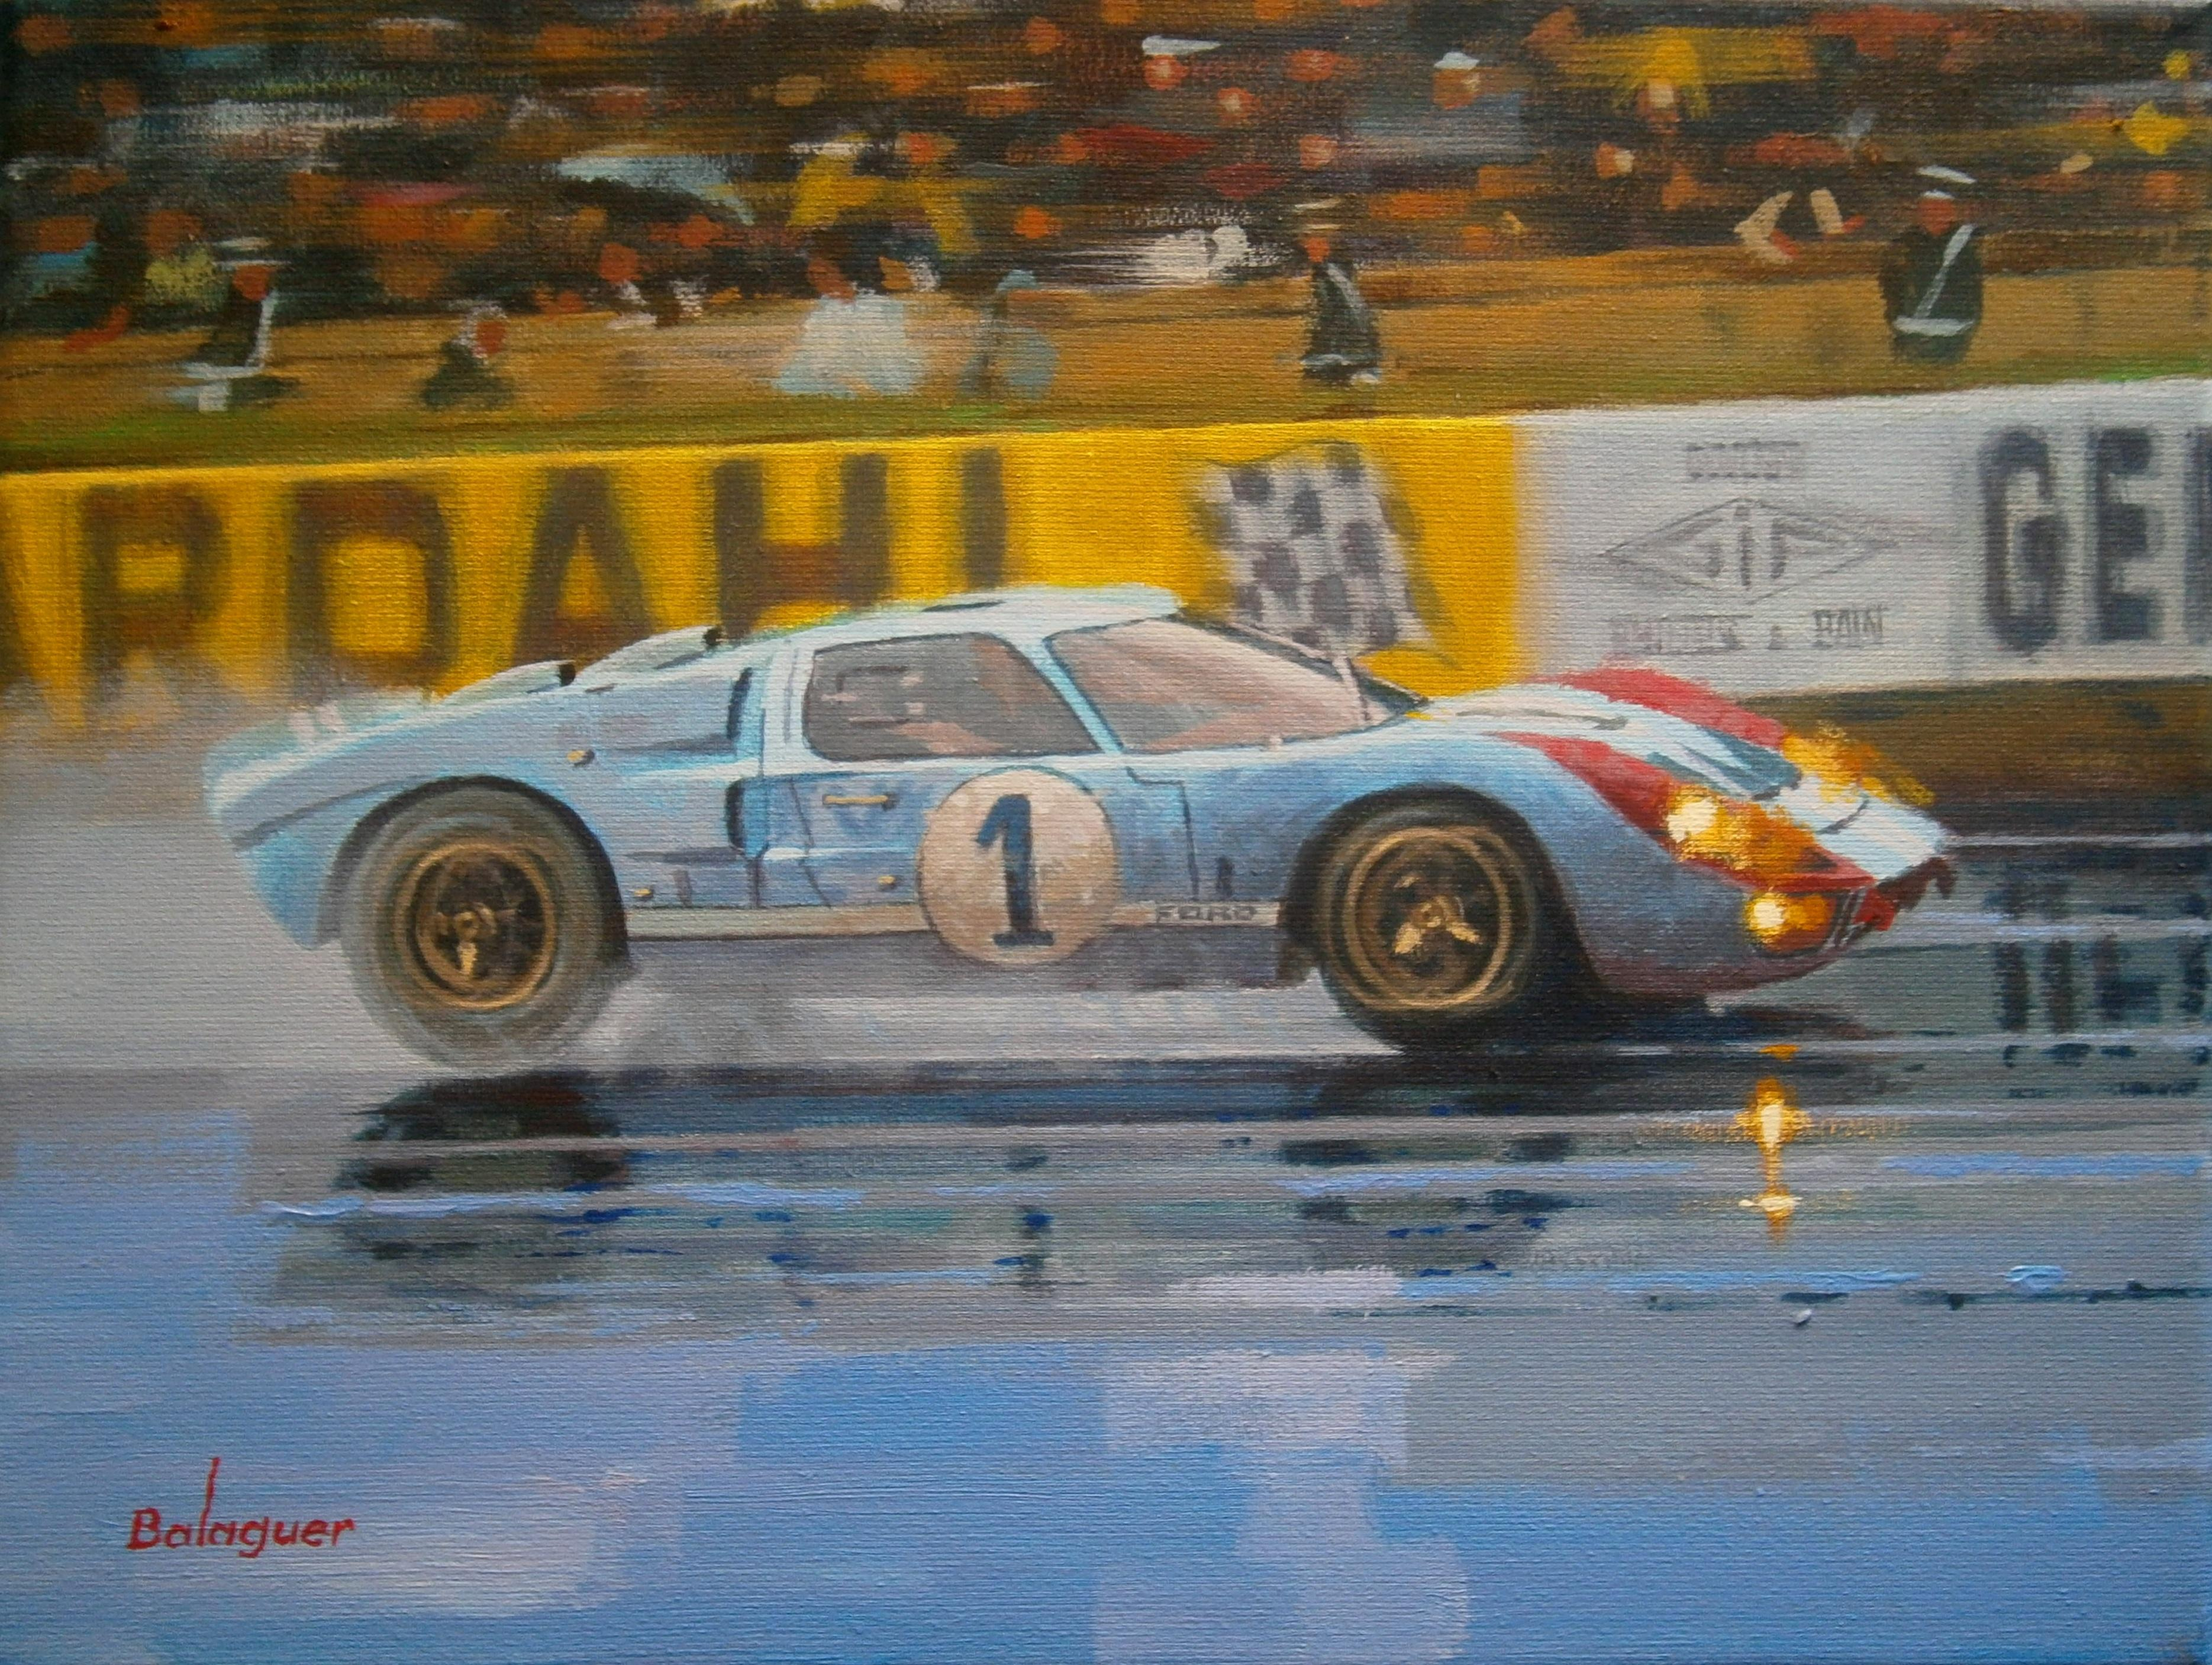 Alex Balaguer Ken Miles And Denny Hulme Le Mans 1966 Ford Gt40 Mk Ii Acrylic Canvas Painting For Sale At 1stdibs